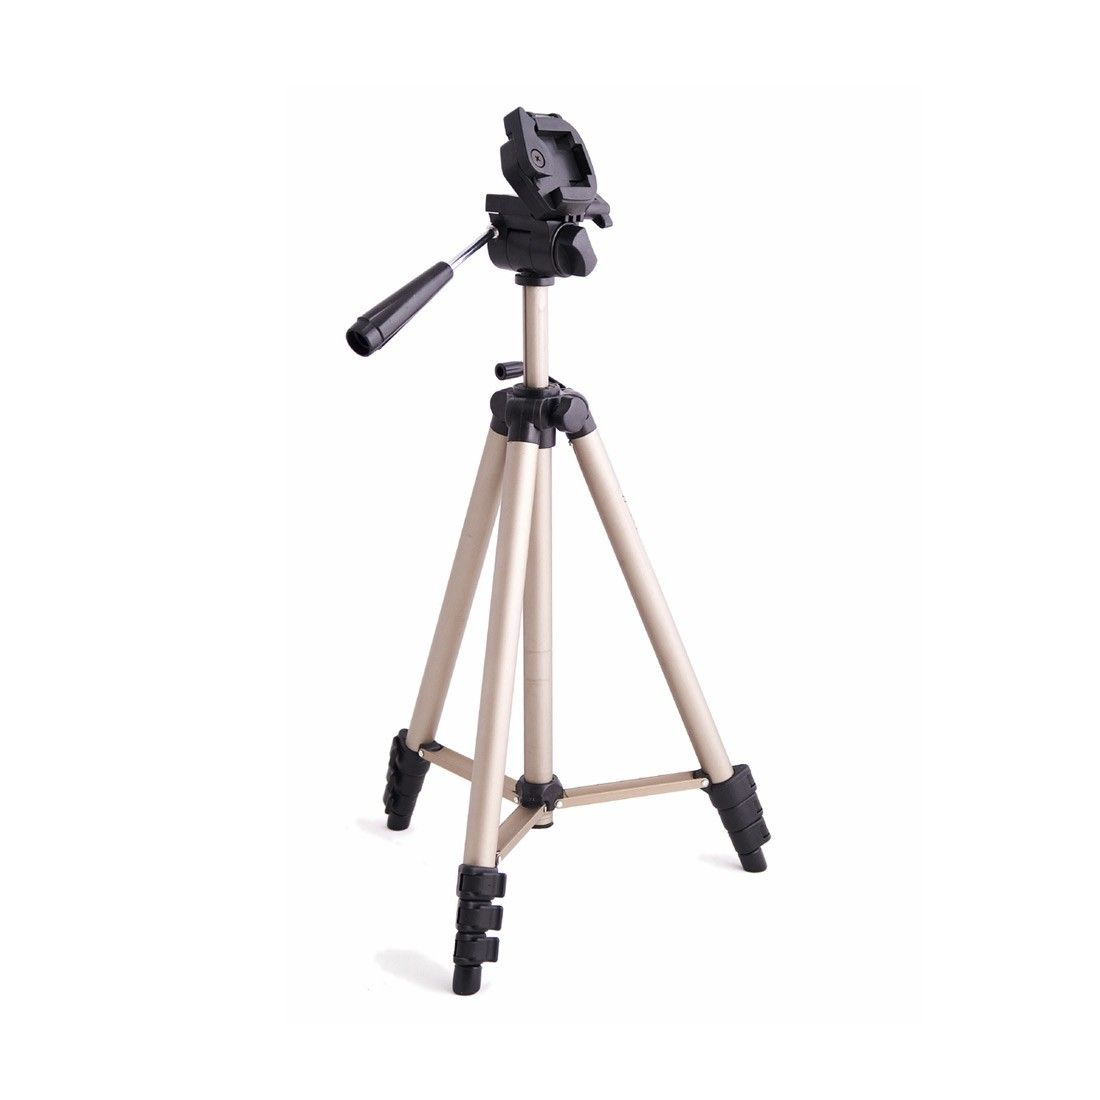 SLR Camera Tripod | Places to Visit | Pinterest | Camera tripod